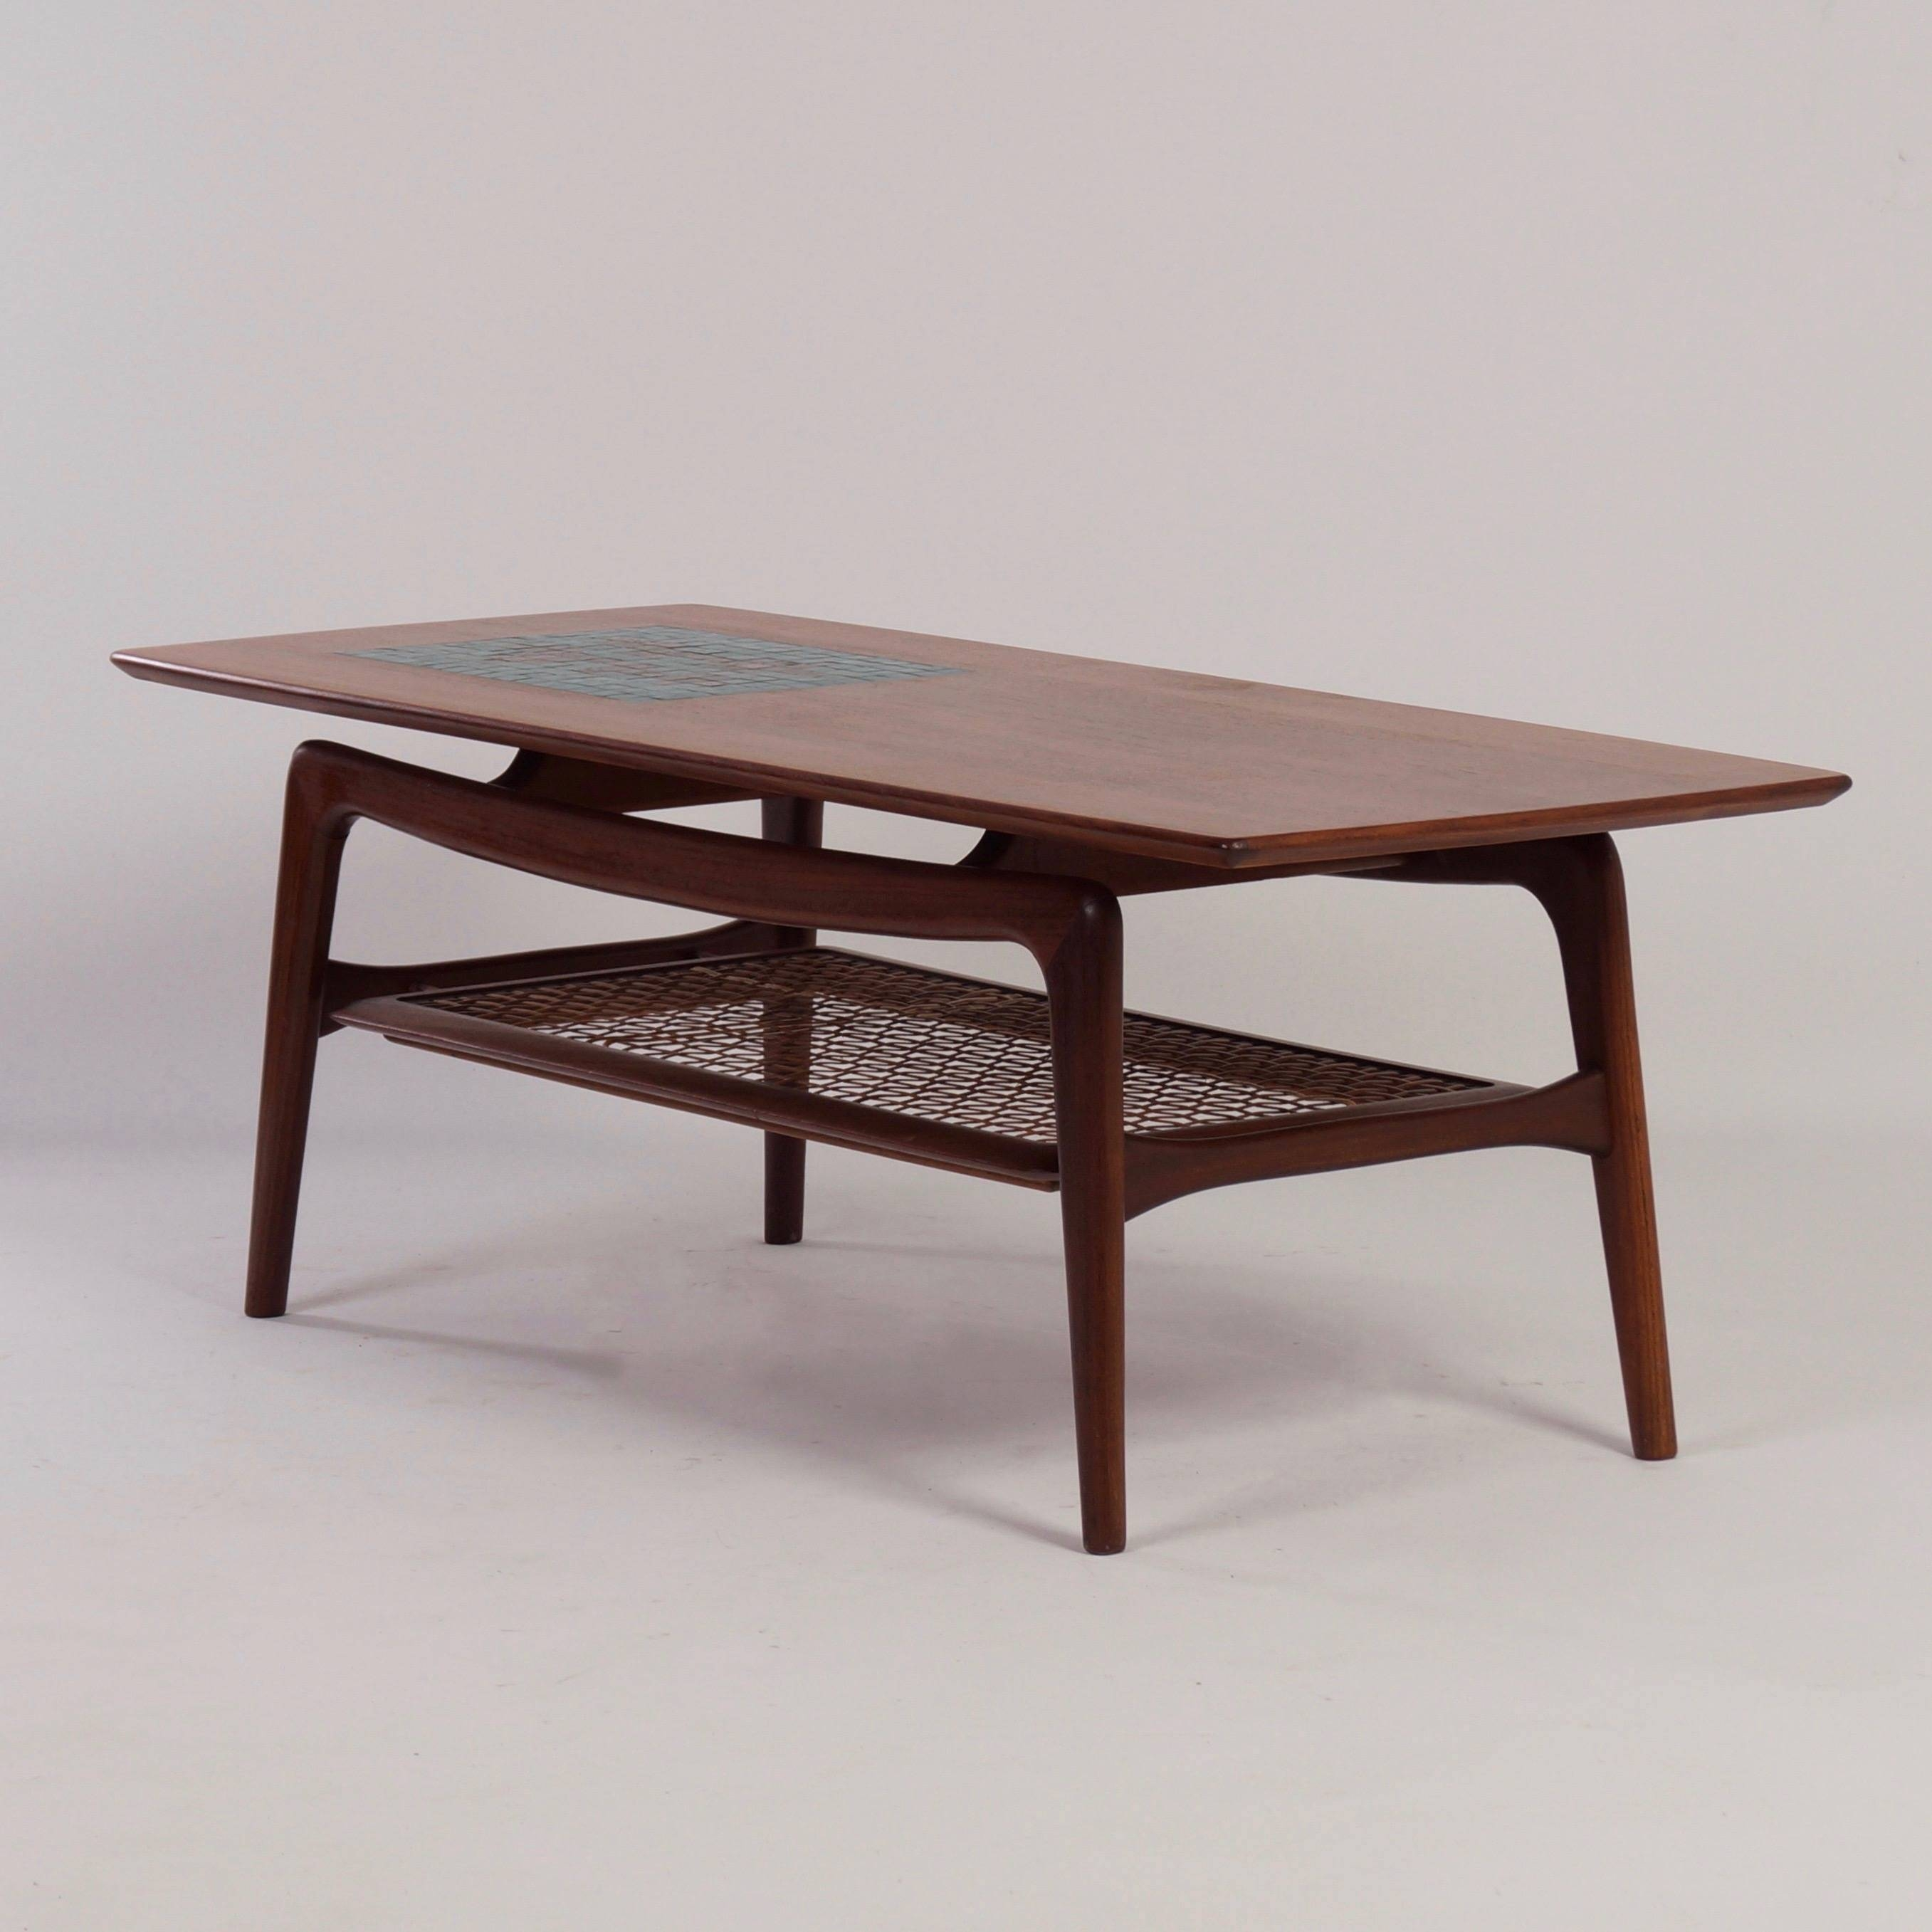 Vintage | Teak Coffee Tablelouis Van Teeffelen For Wébé, 1960S regarding Sixties Coffee Tables (Image 30 of 30)